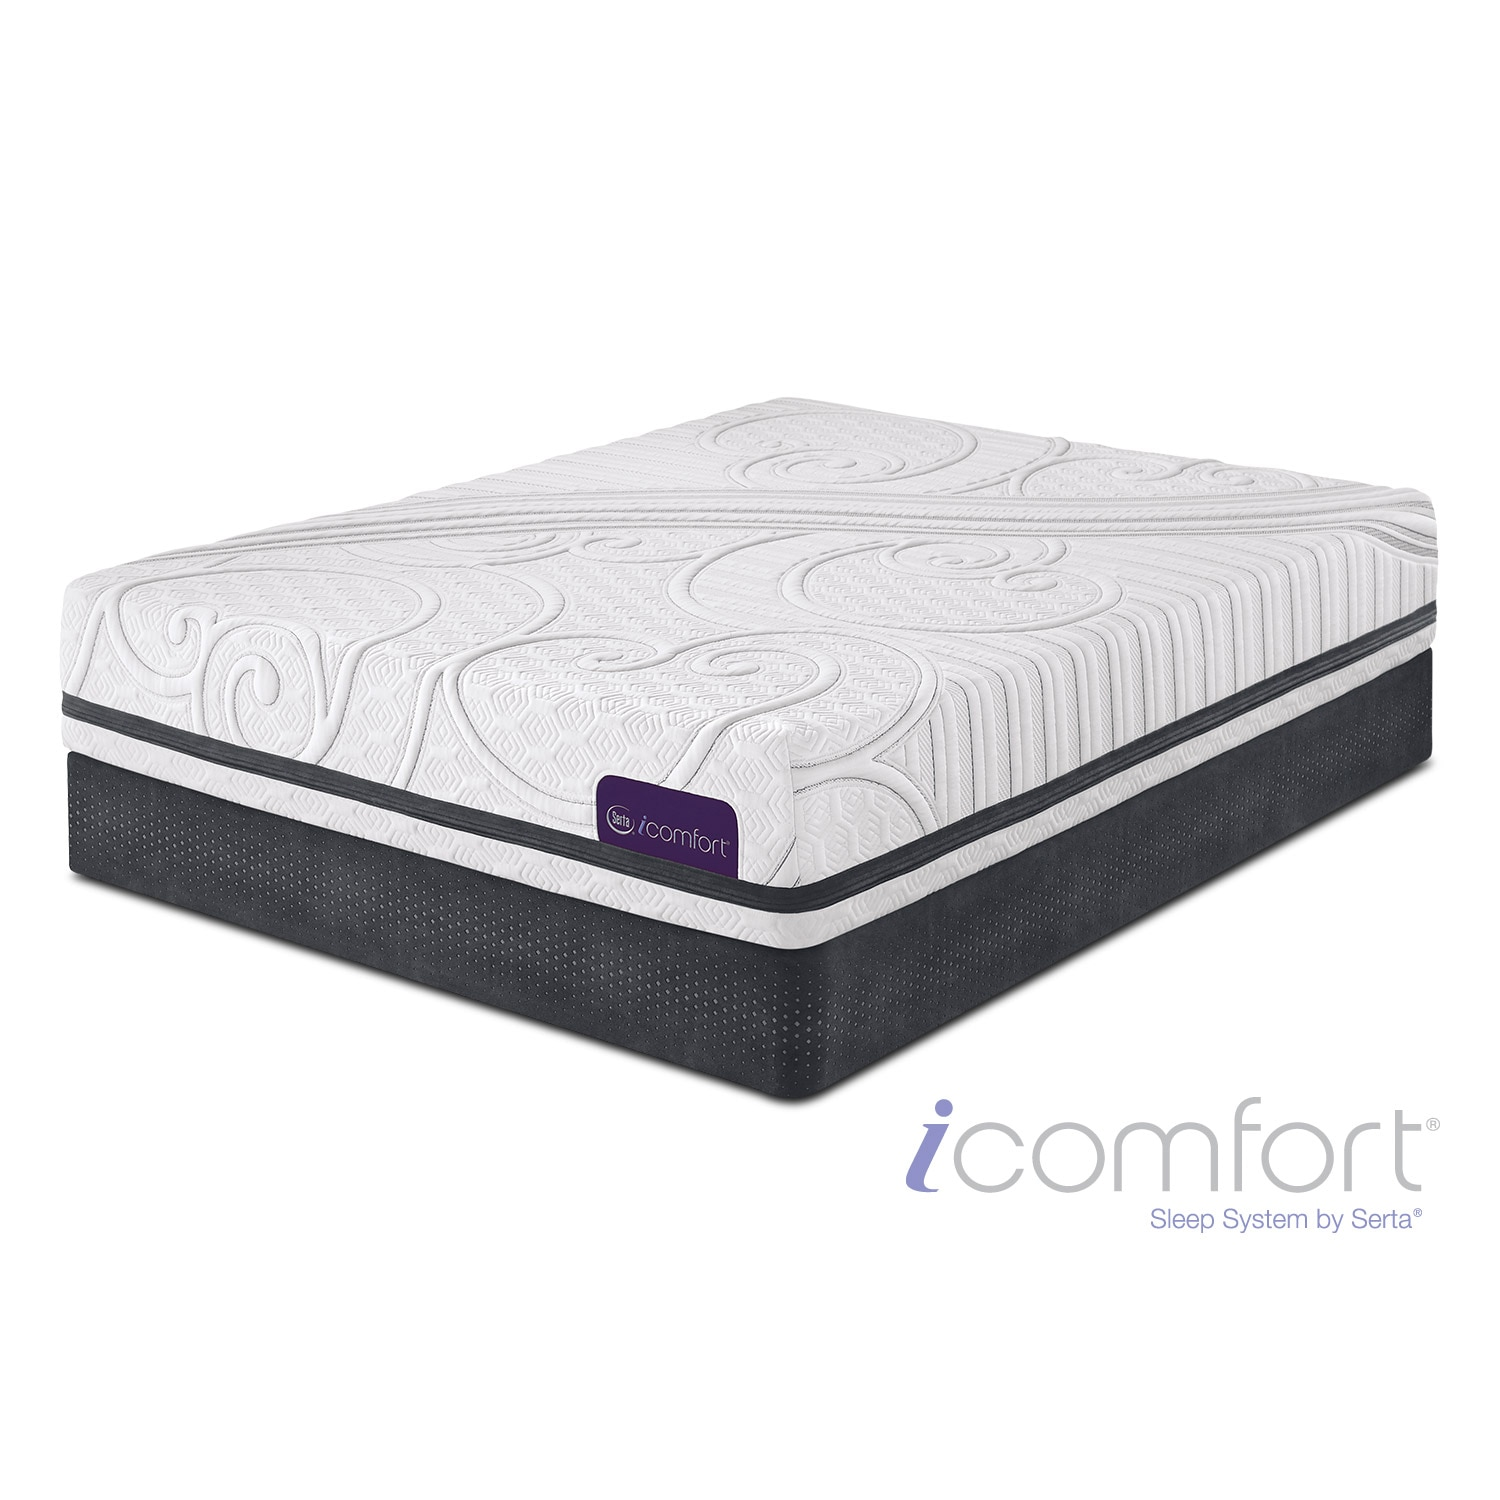 Mattresses and Bedding - Savant III Firm Full Mattress/Foundation Set